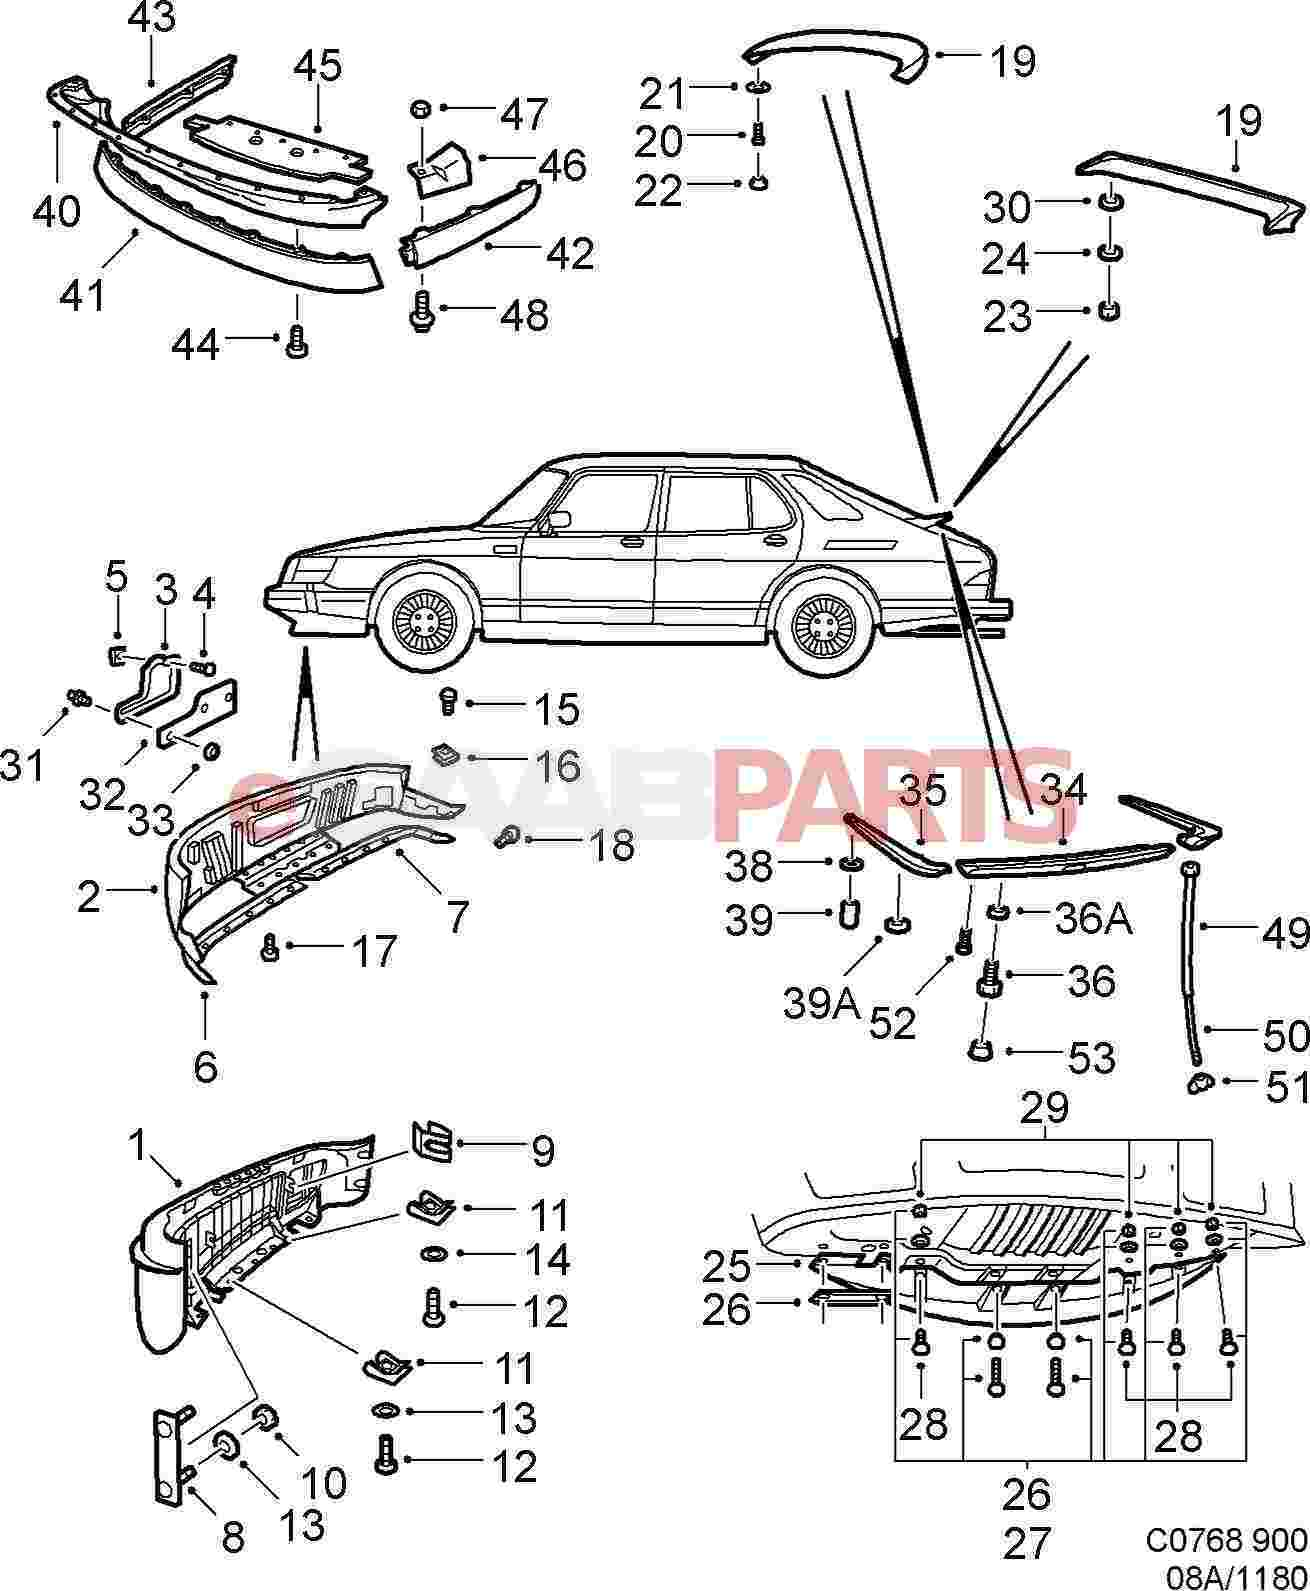 Service manual [1996 Saab 900 Instructions For A Ignition